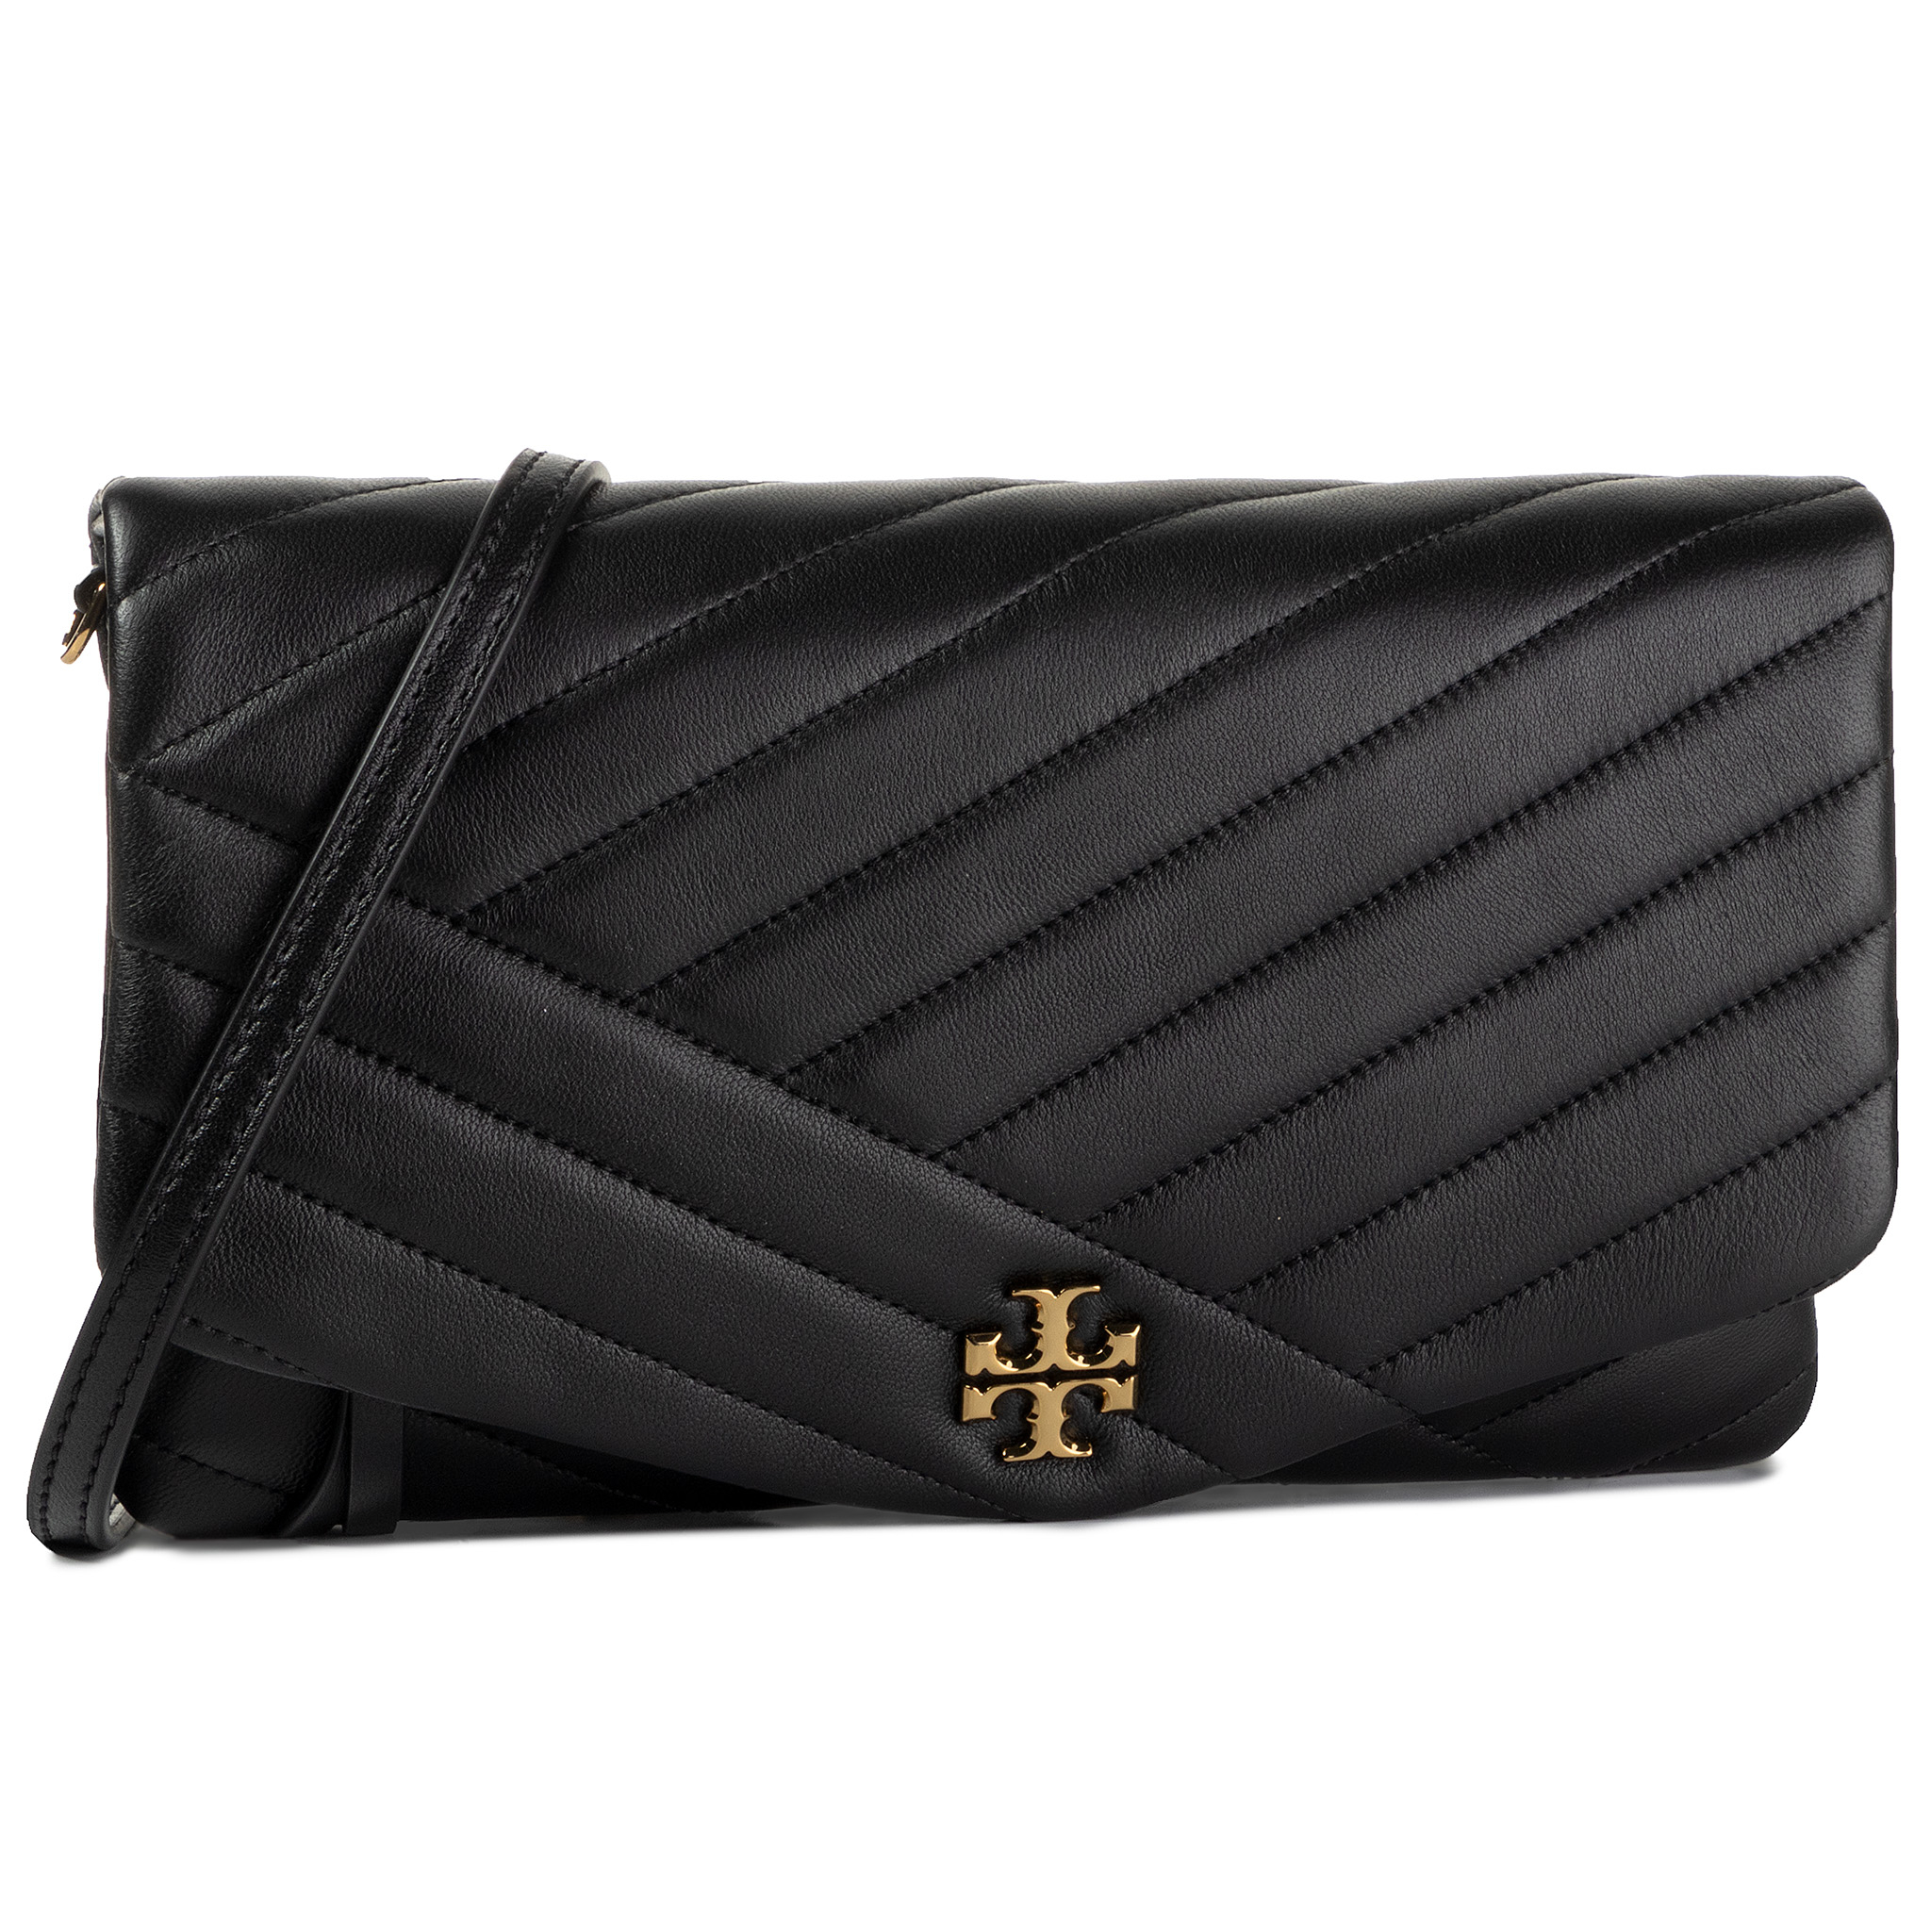 Geantă TORY BURCH - Kira Chevron Clutch 56824 Black